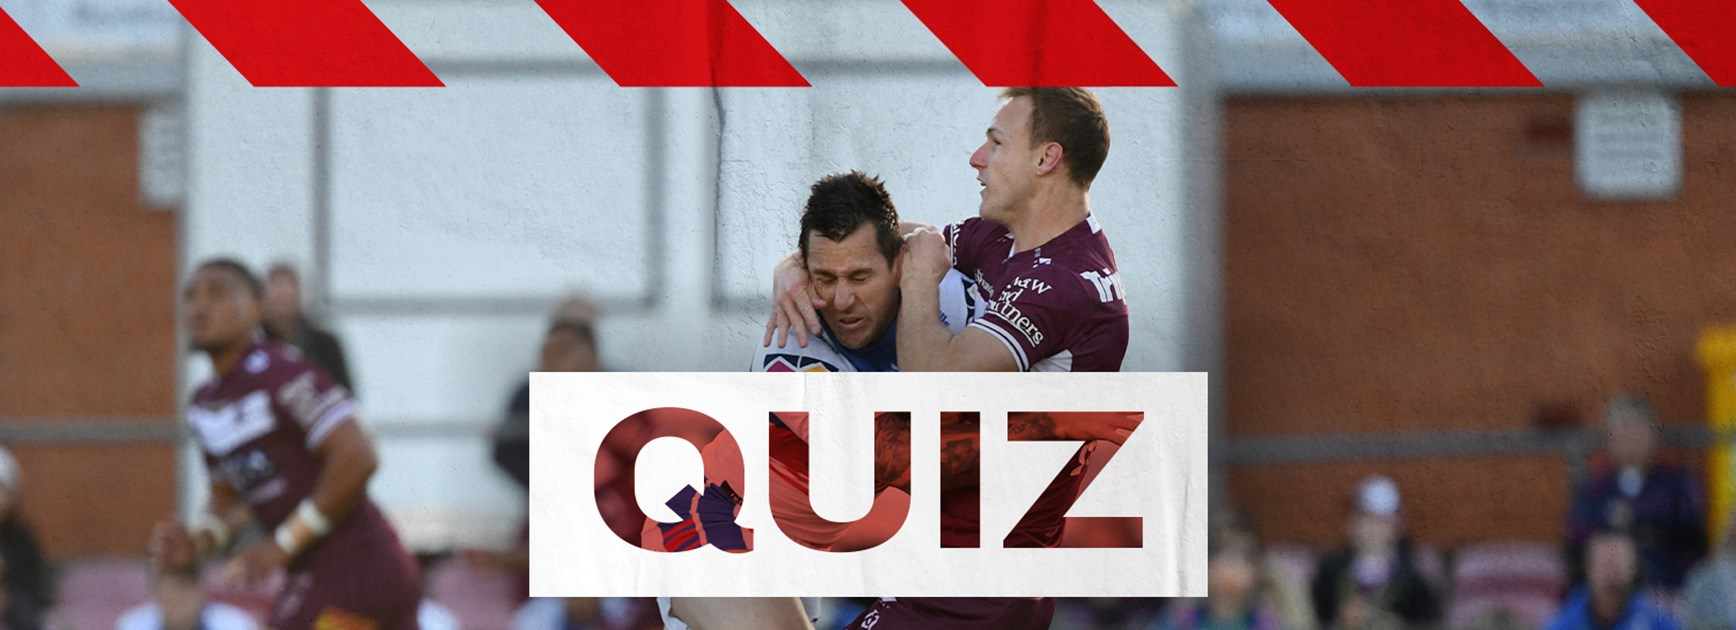 QUIZ: Knights-Manly Rivalry